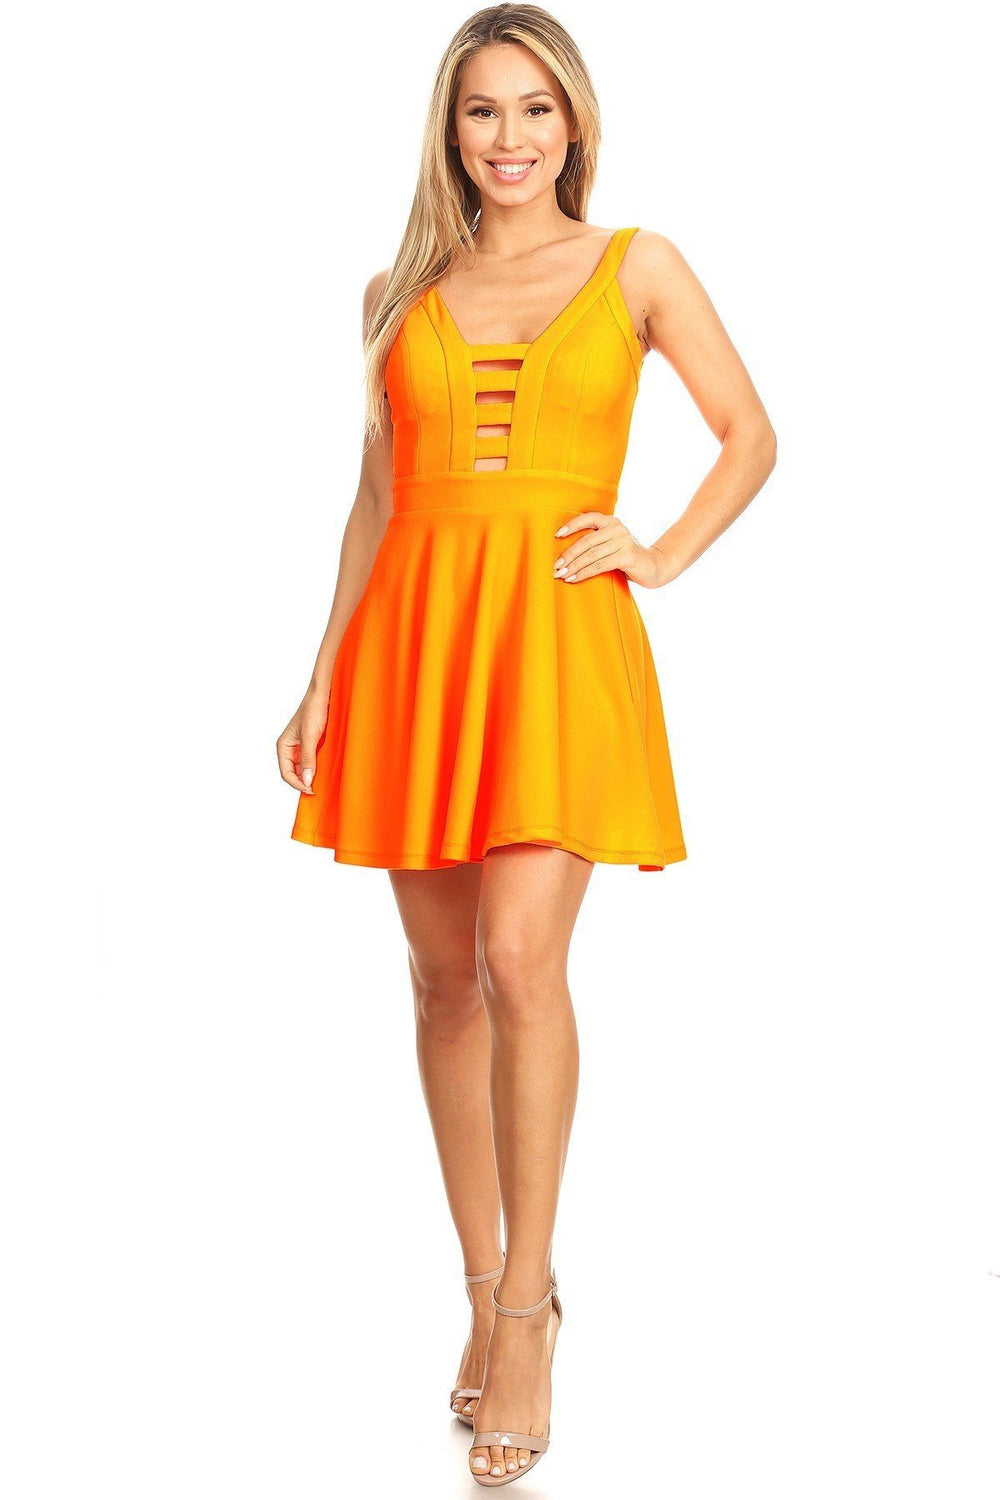 LORNA Solid Fit And Flare Dress